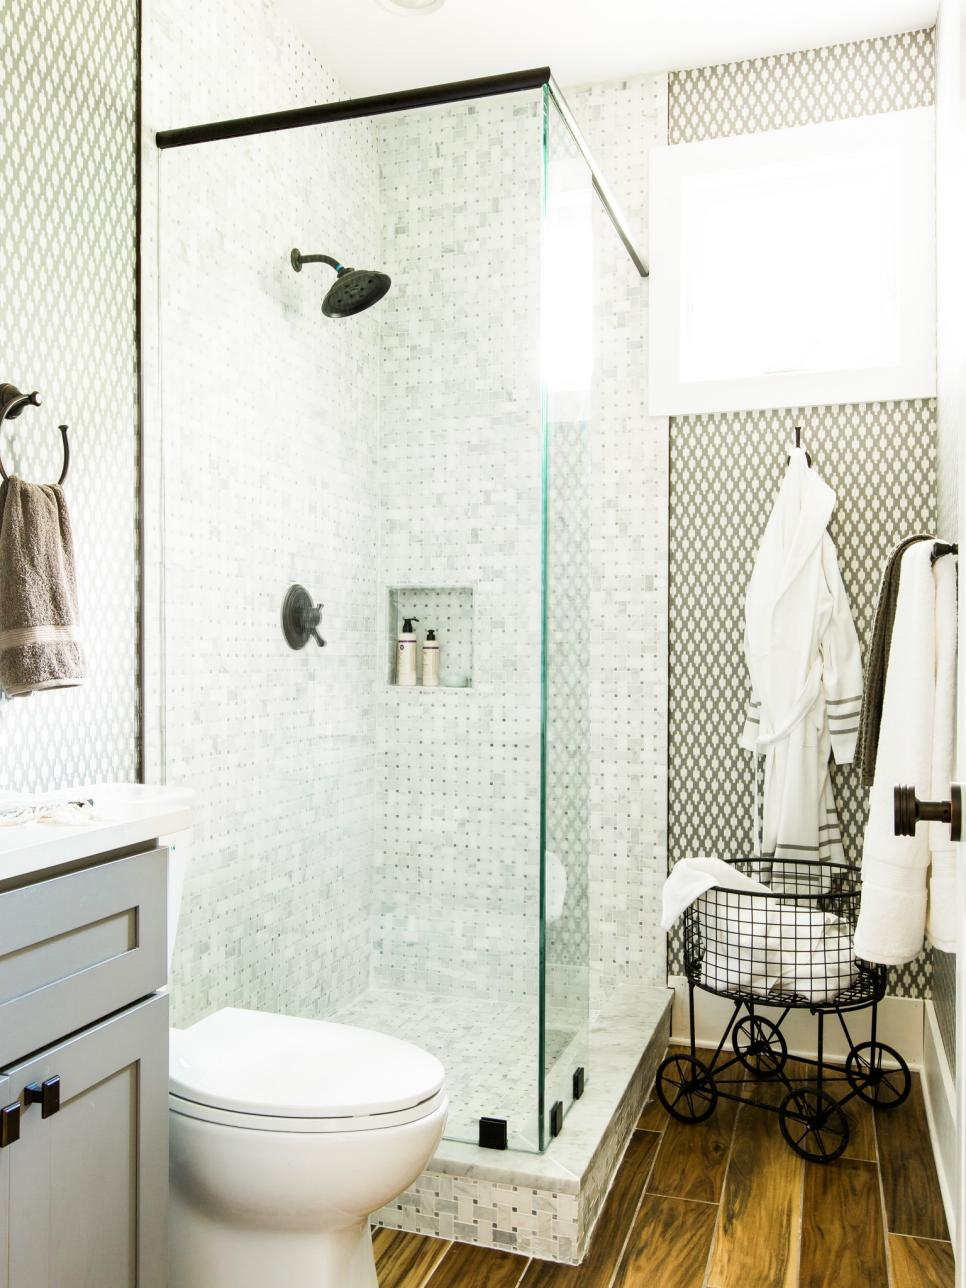 hgtv_2017_guest-bathroom-16-shower_v-jpg-rend-hgtvcom-966-1288